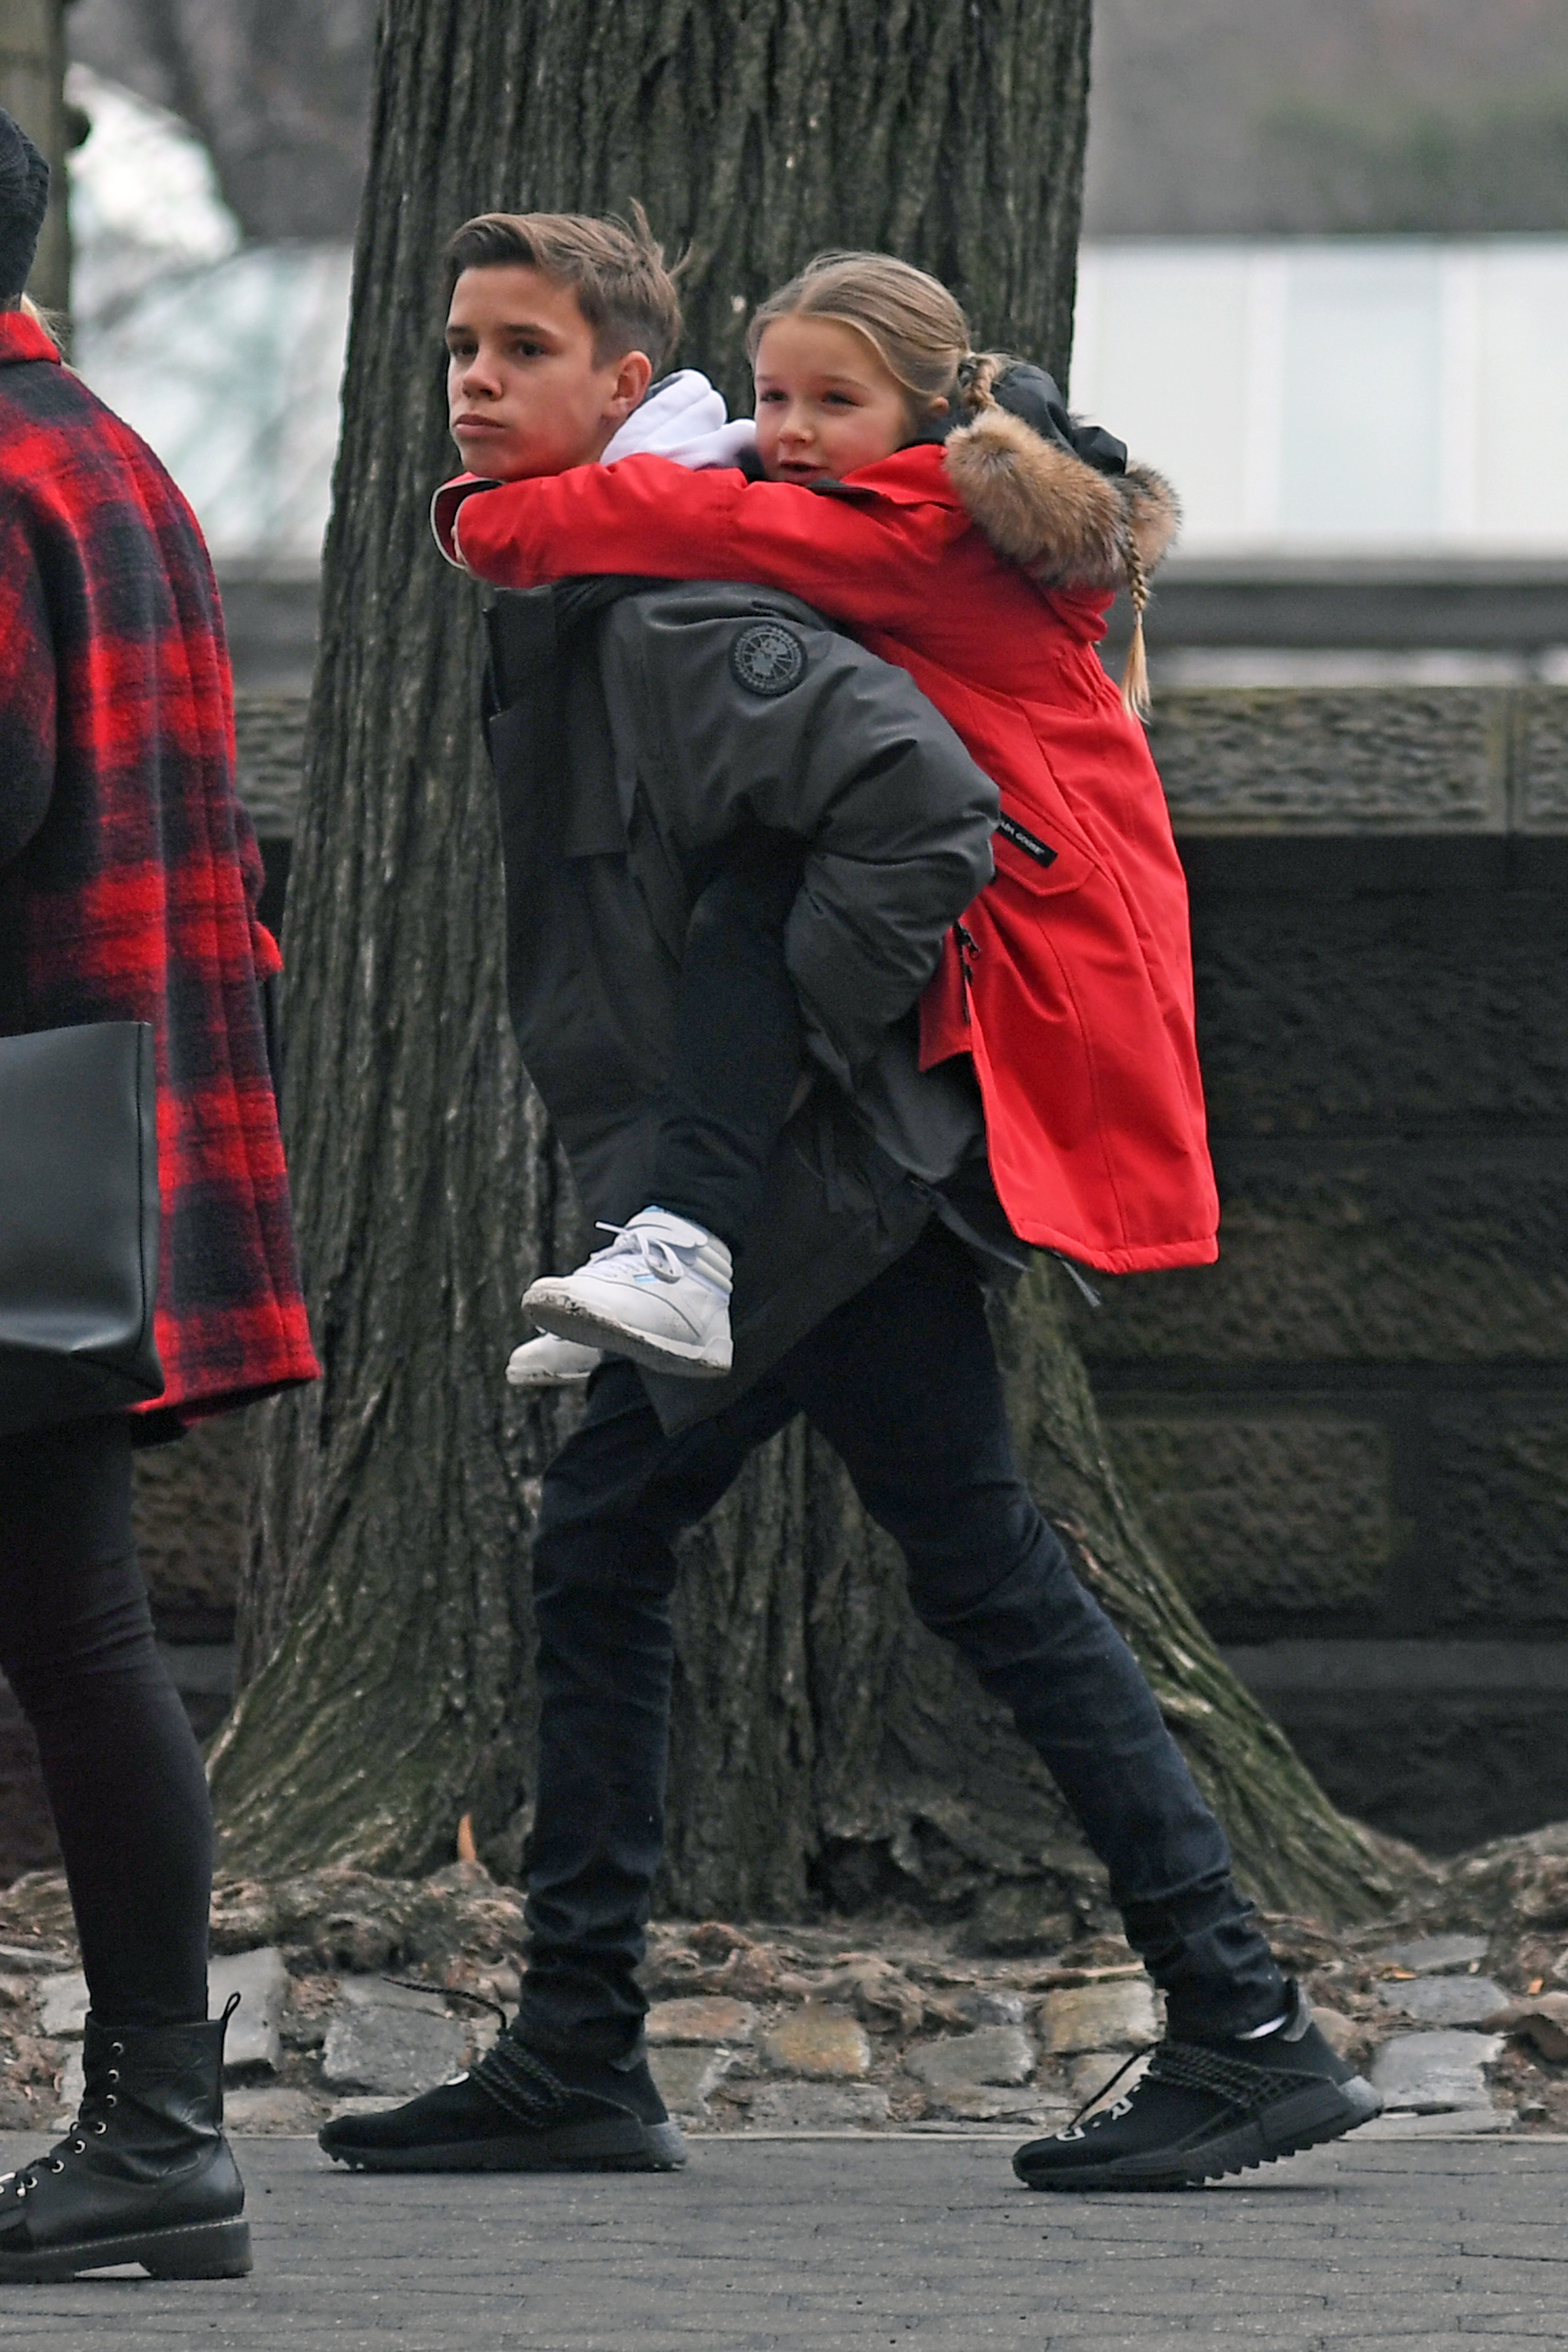 EXCLUSIVE: David Beckhamn's kids Romeo Beckham Is seen giving her sister Harper Beckham a piggy back while walking in Central Park New York city today <P> Pictured: Romeo Beckham, Harper Beckham  <B>Ref: SPL1657536  100218   EXCLUSIVE</B><BR/> Picture by: Elder Ordonez / Splash News<BR/> </P><P> <B>Splash News and Pictures</B><BR/> Los Angeles:310-821-2666<BR/> New York:212-619-2666<BR/> London:870-934-2666<BR/> <span id=